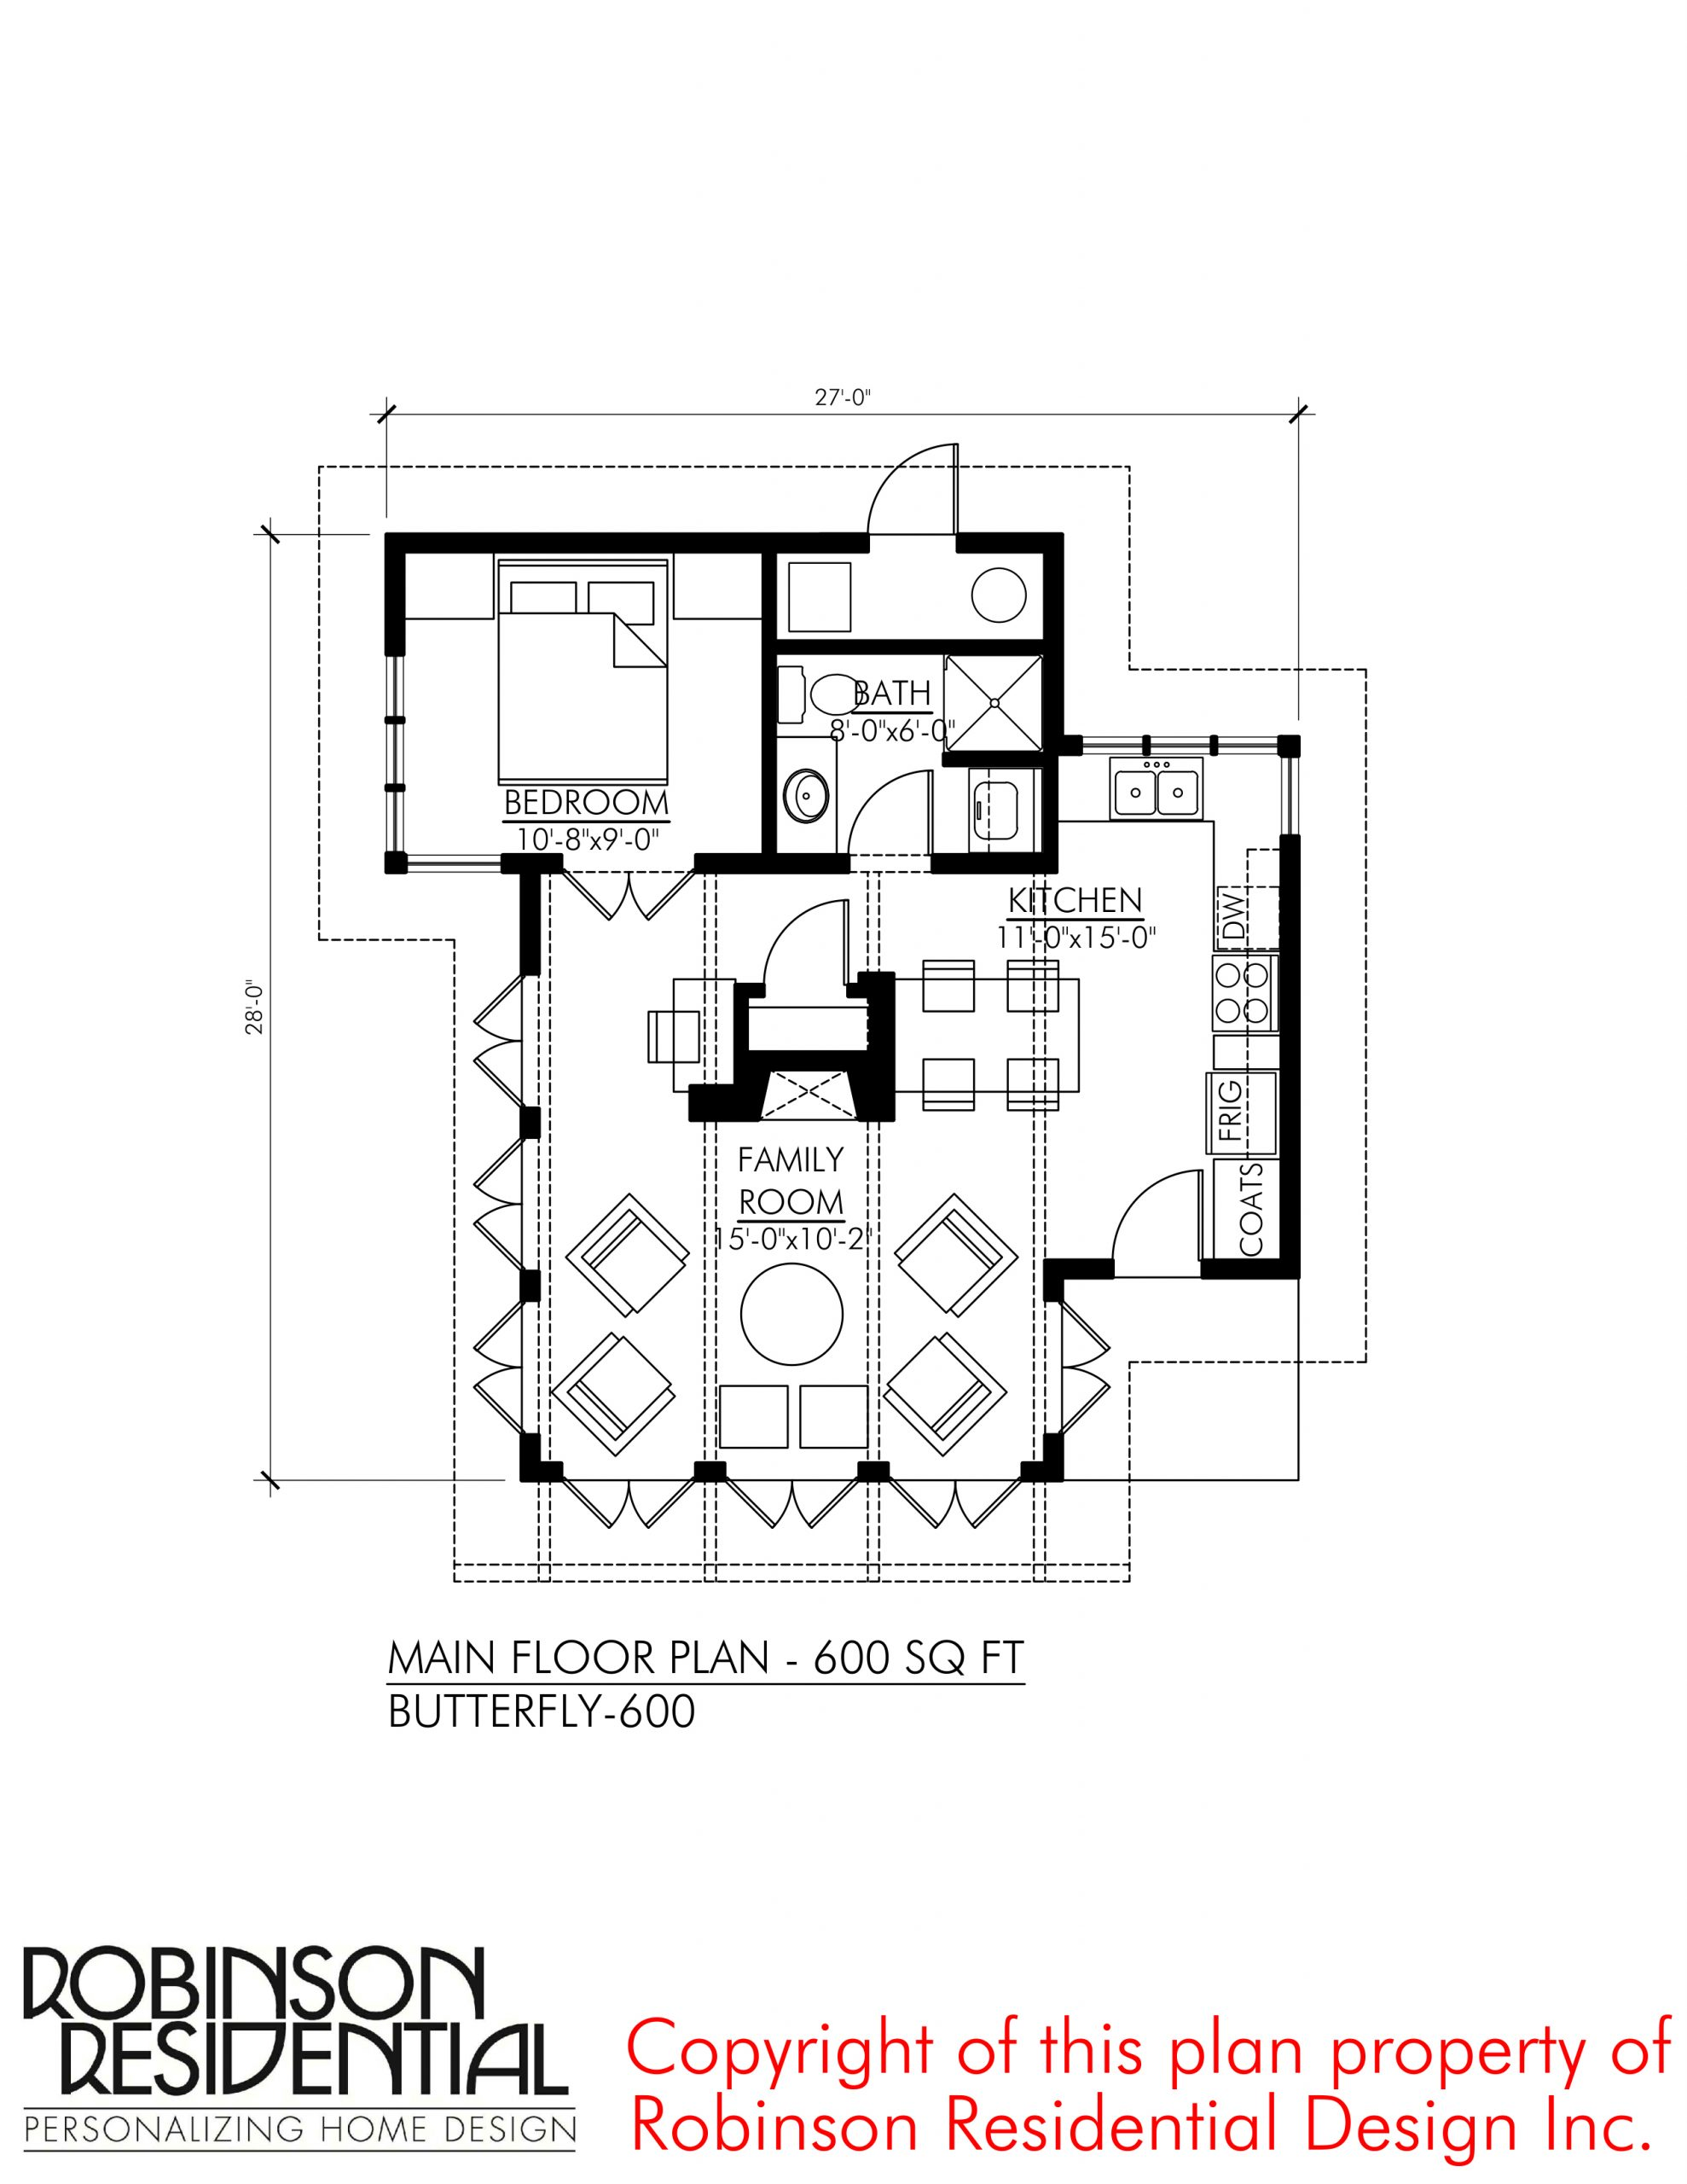 Contemporary Butterfly 600 Robinson Plans